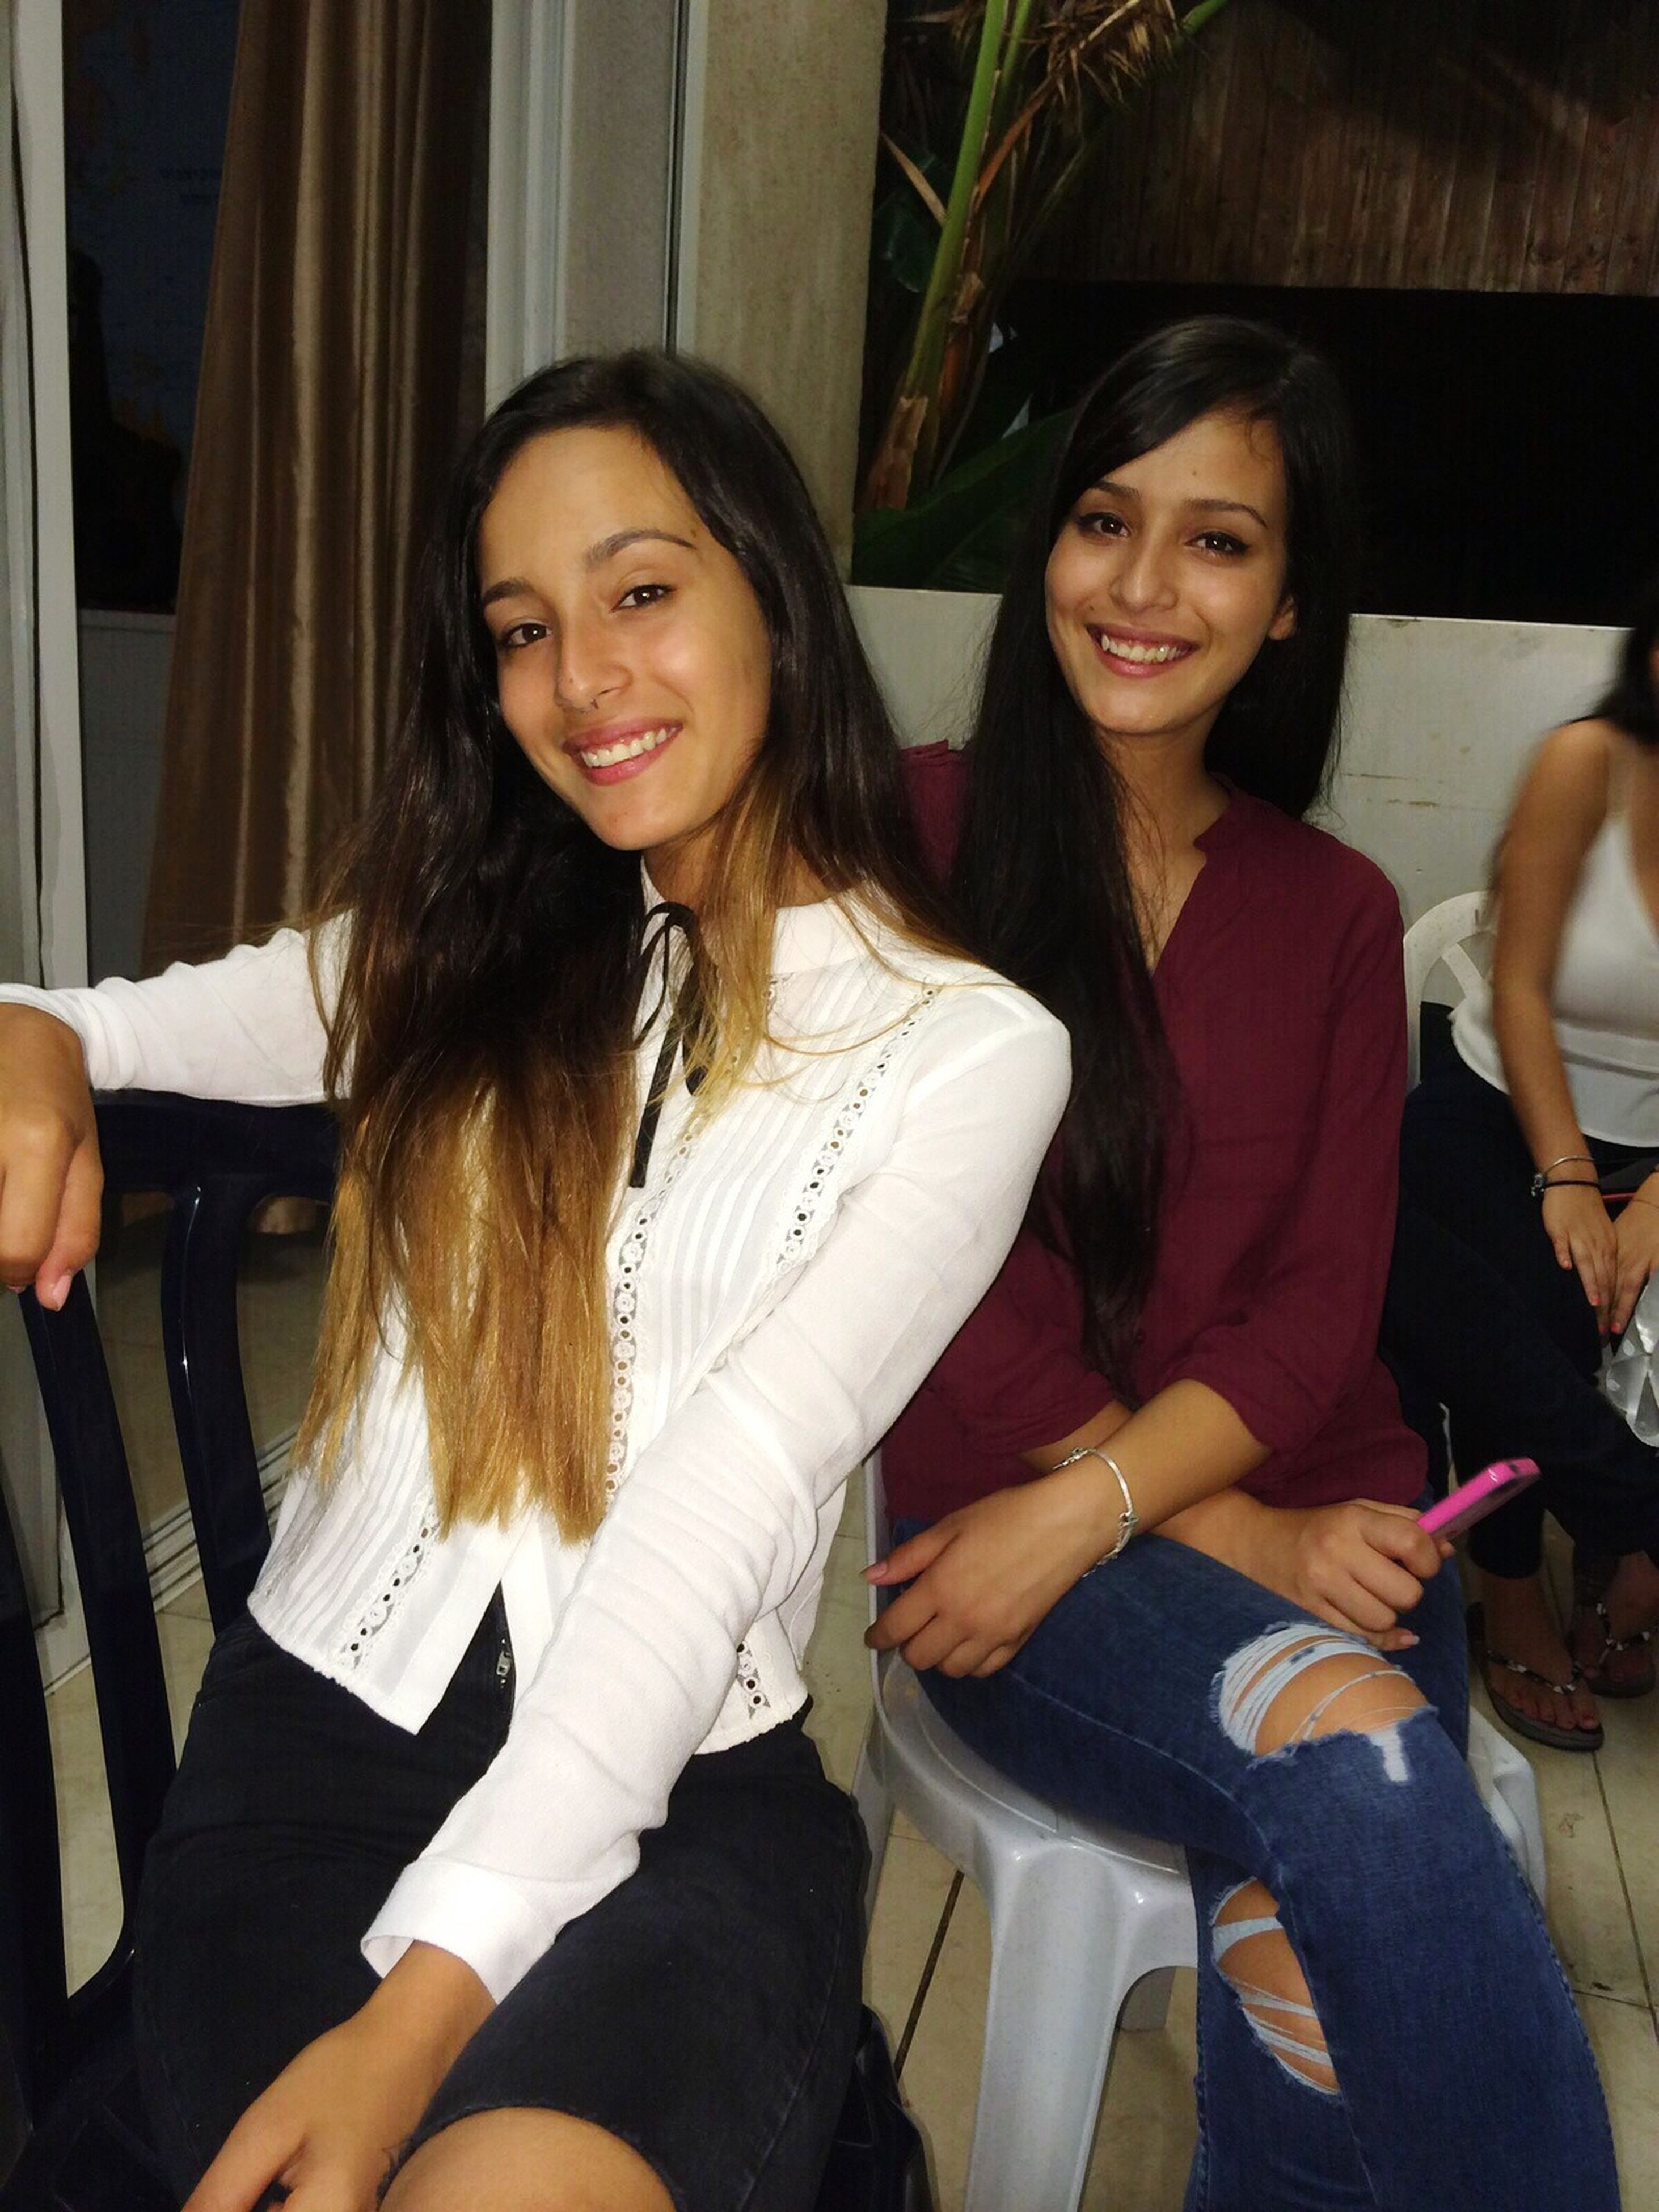 young adult, lifestyles, person, young women, portrait, leisure activity, looking at camera, smiling, casual clothing, happiness, sitting, front view, togetherness, long hair, three quarter length, indoors